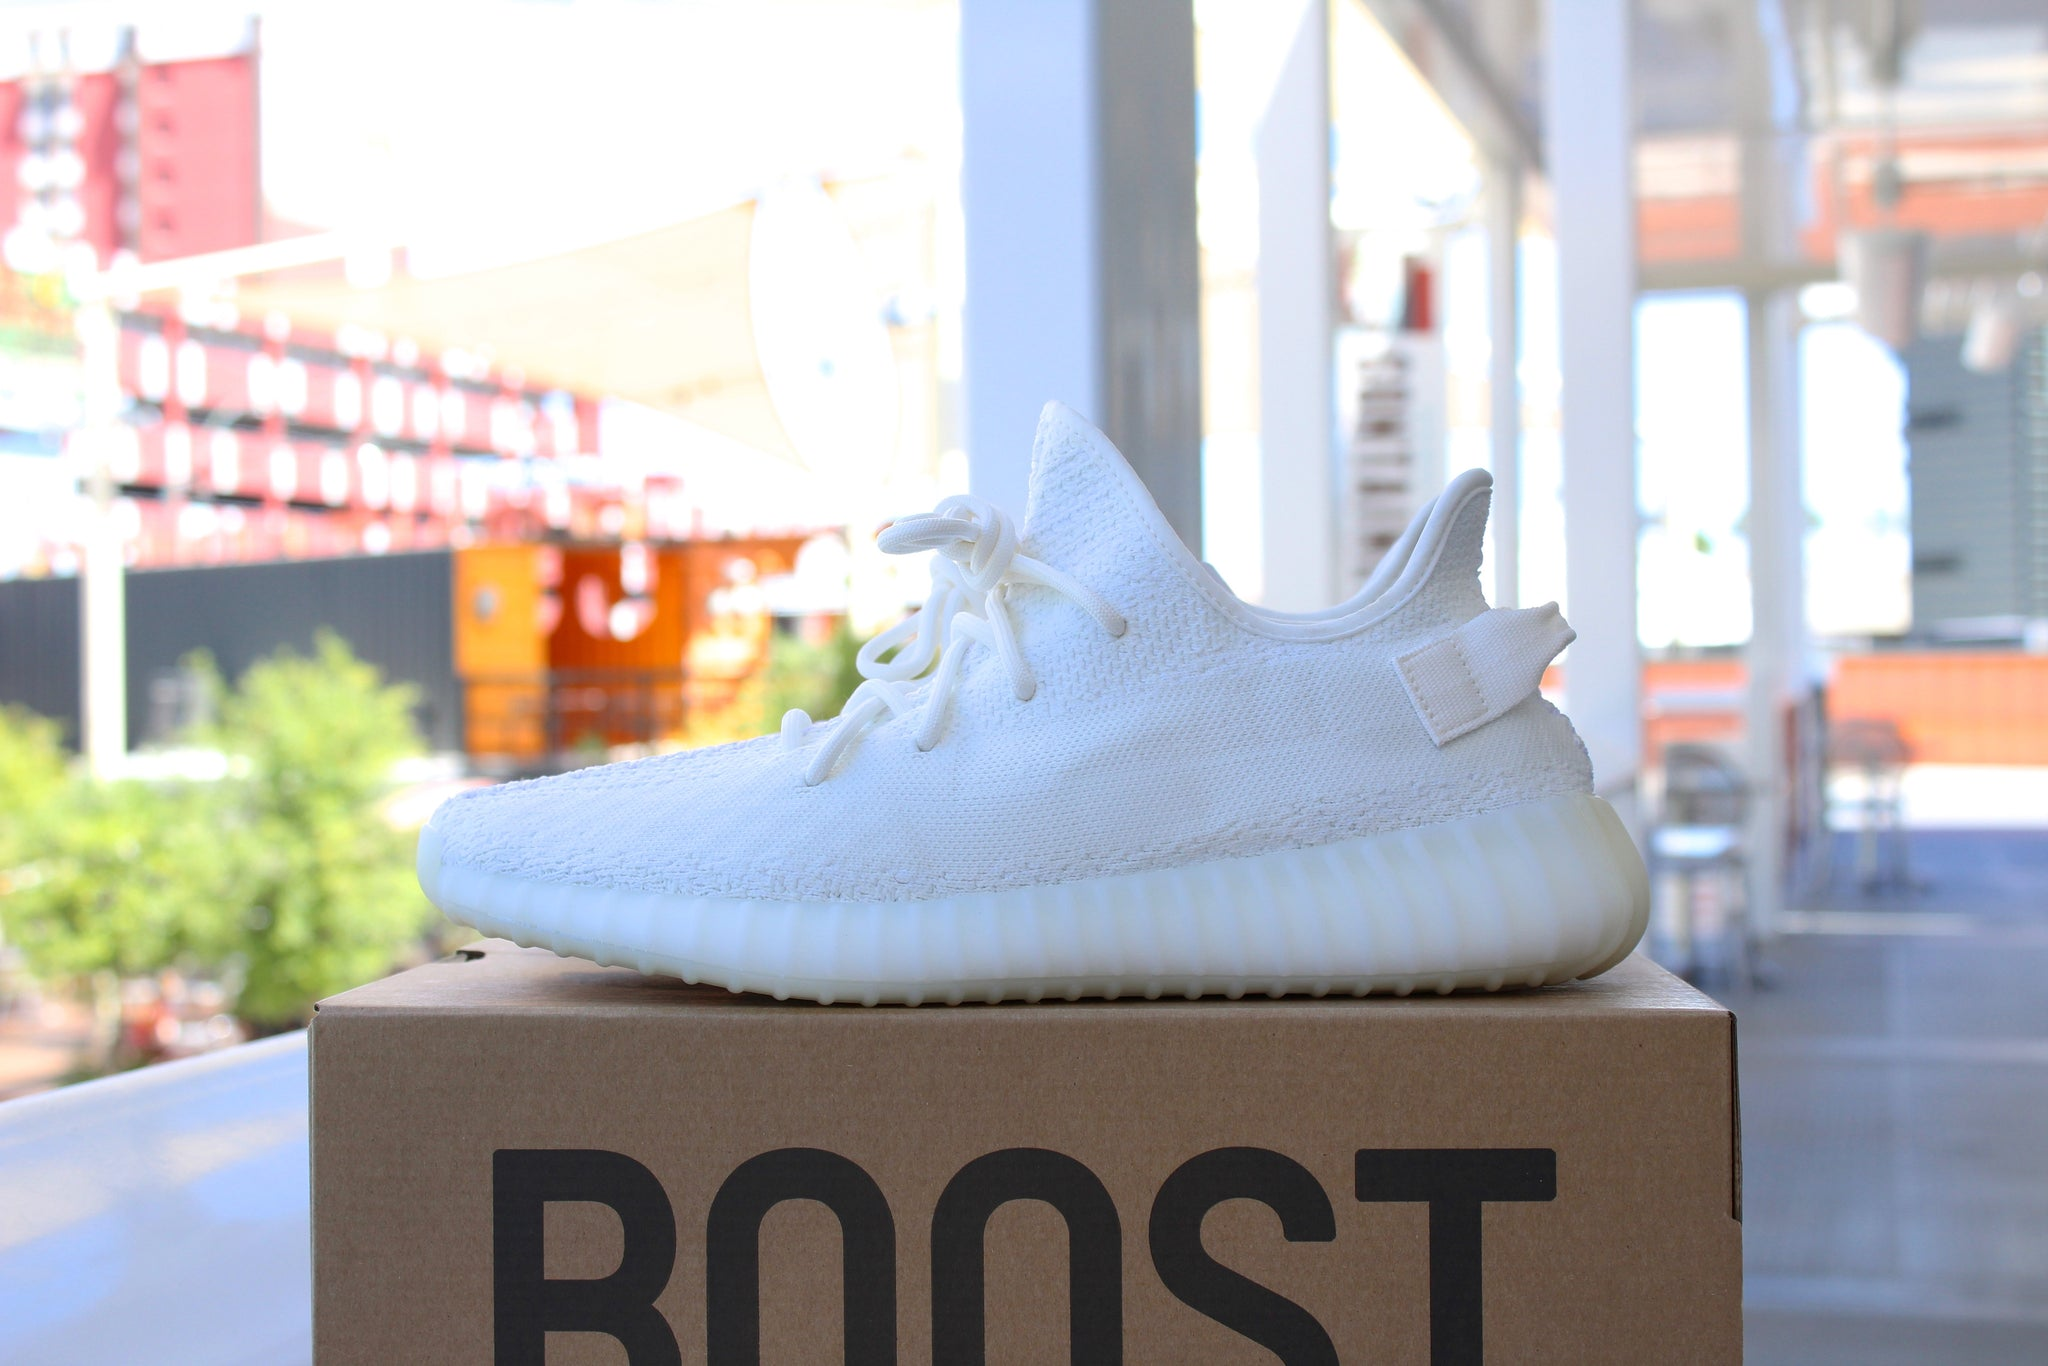 Adidas Yeezy Boost 350 V2 (Cream)